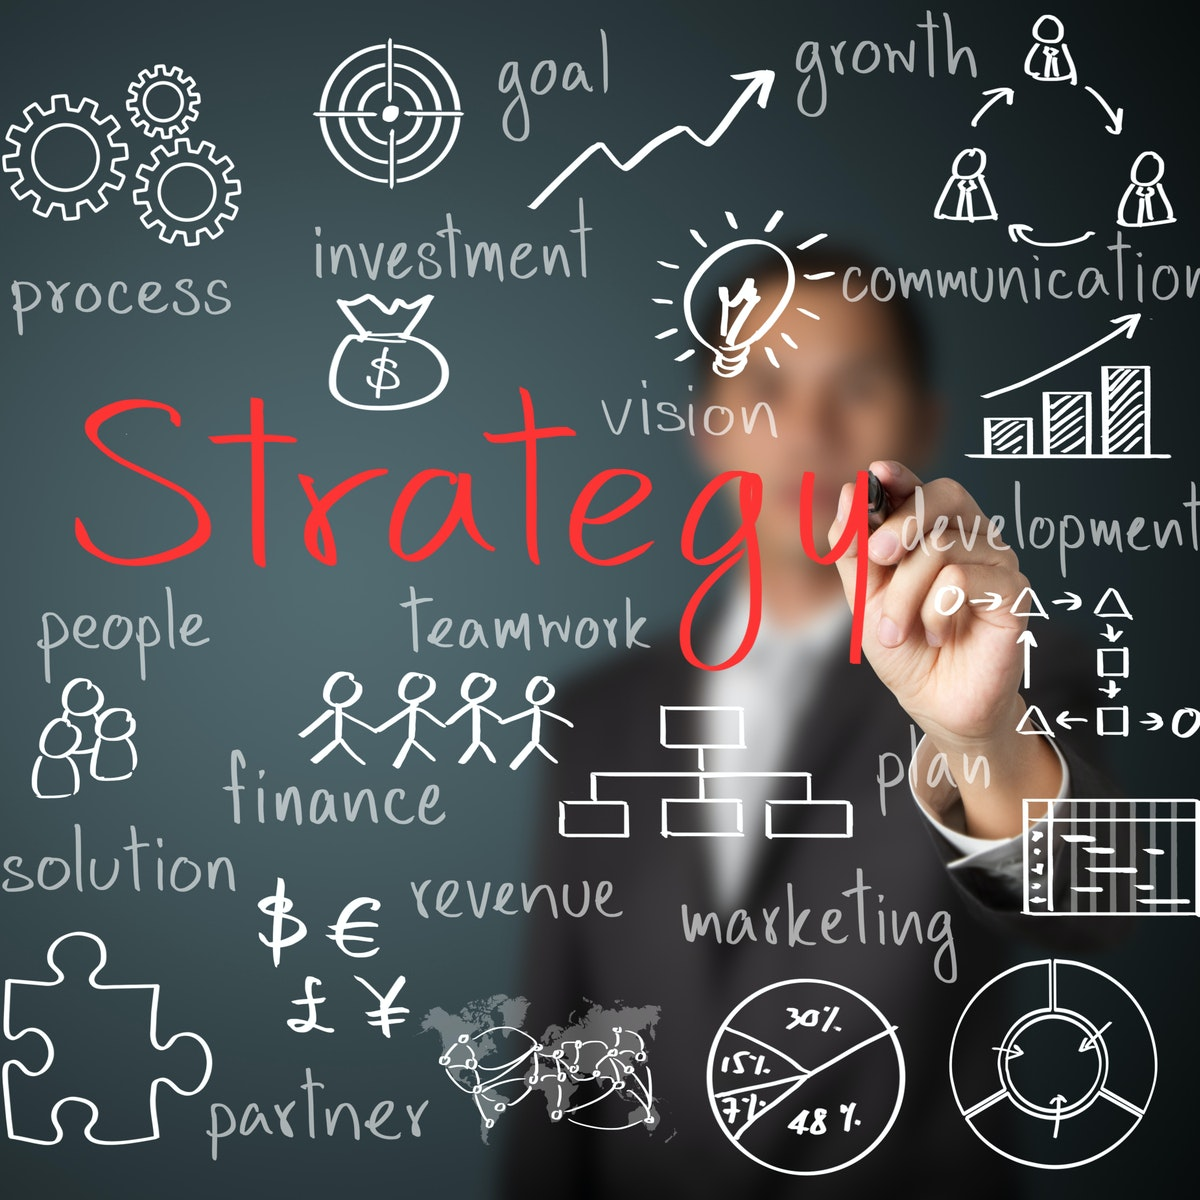 the importance of a business strategy The creation of an effective marketing strategy is often the task of a firm's senior management team by handing down a comprehensive marketing strategy from the c-suite, companies will help to create a more focused, business-wide approach to marketing.